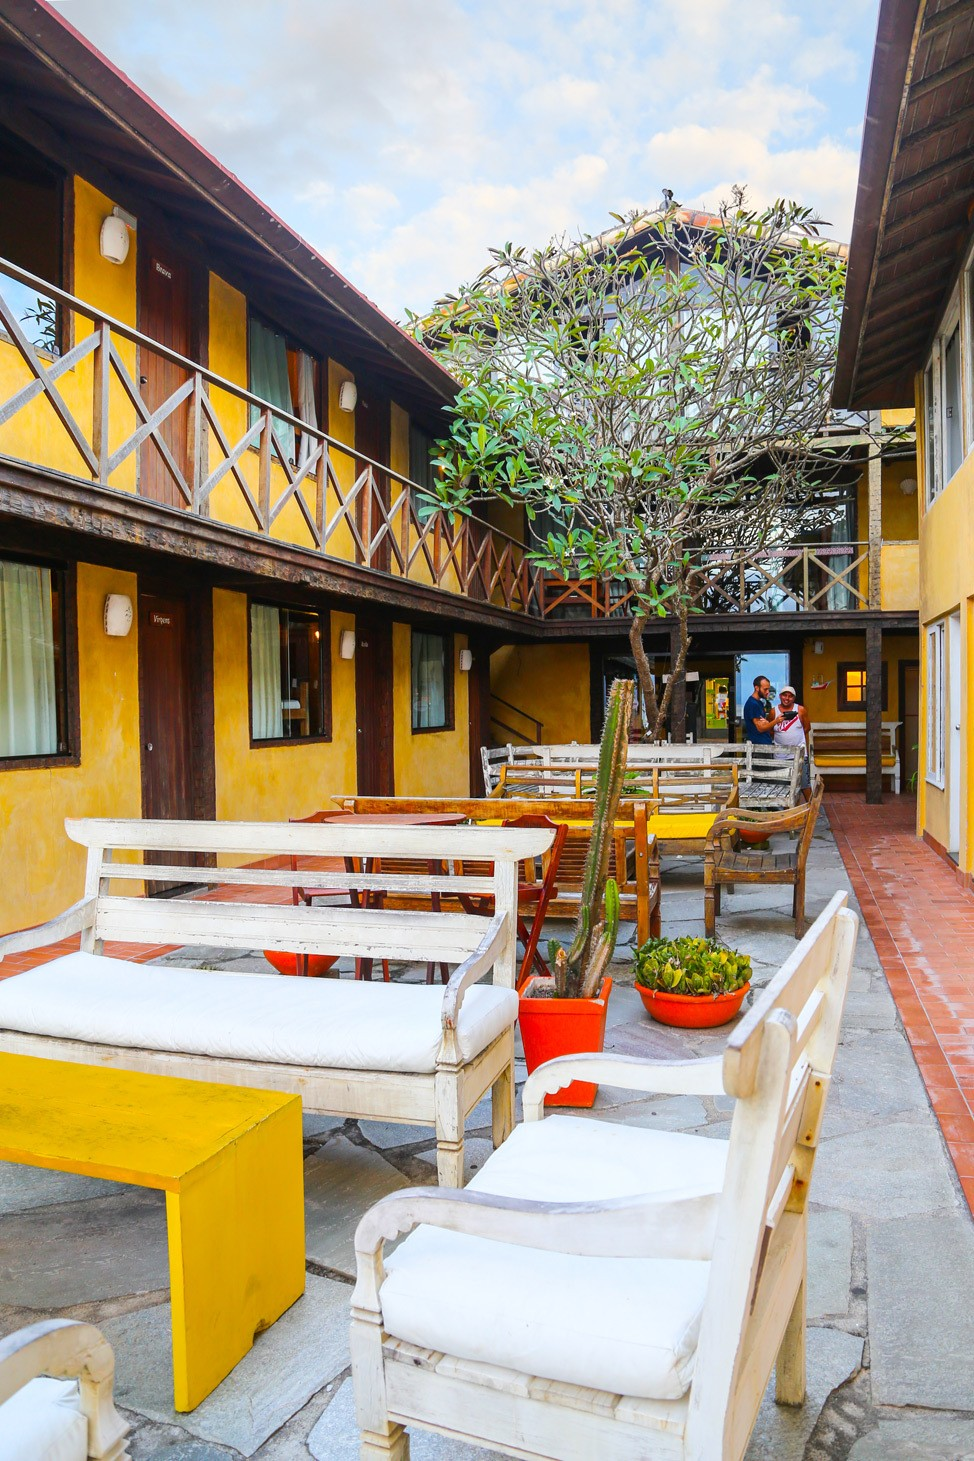 Courtyard at Nomad Hostel, Buzios, Brazil